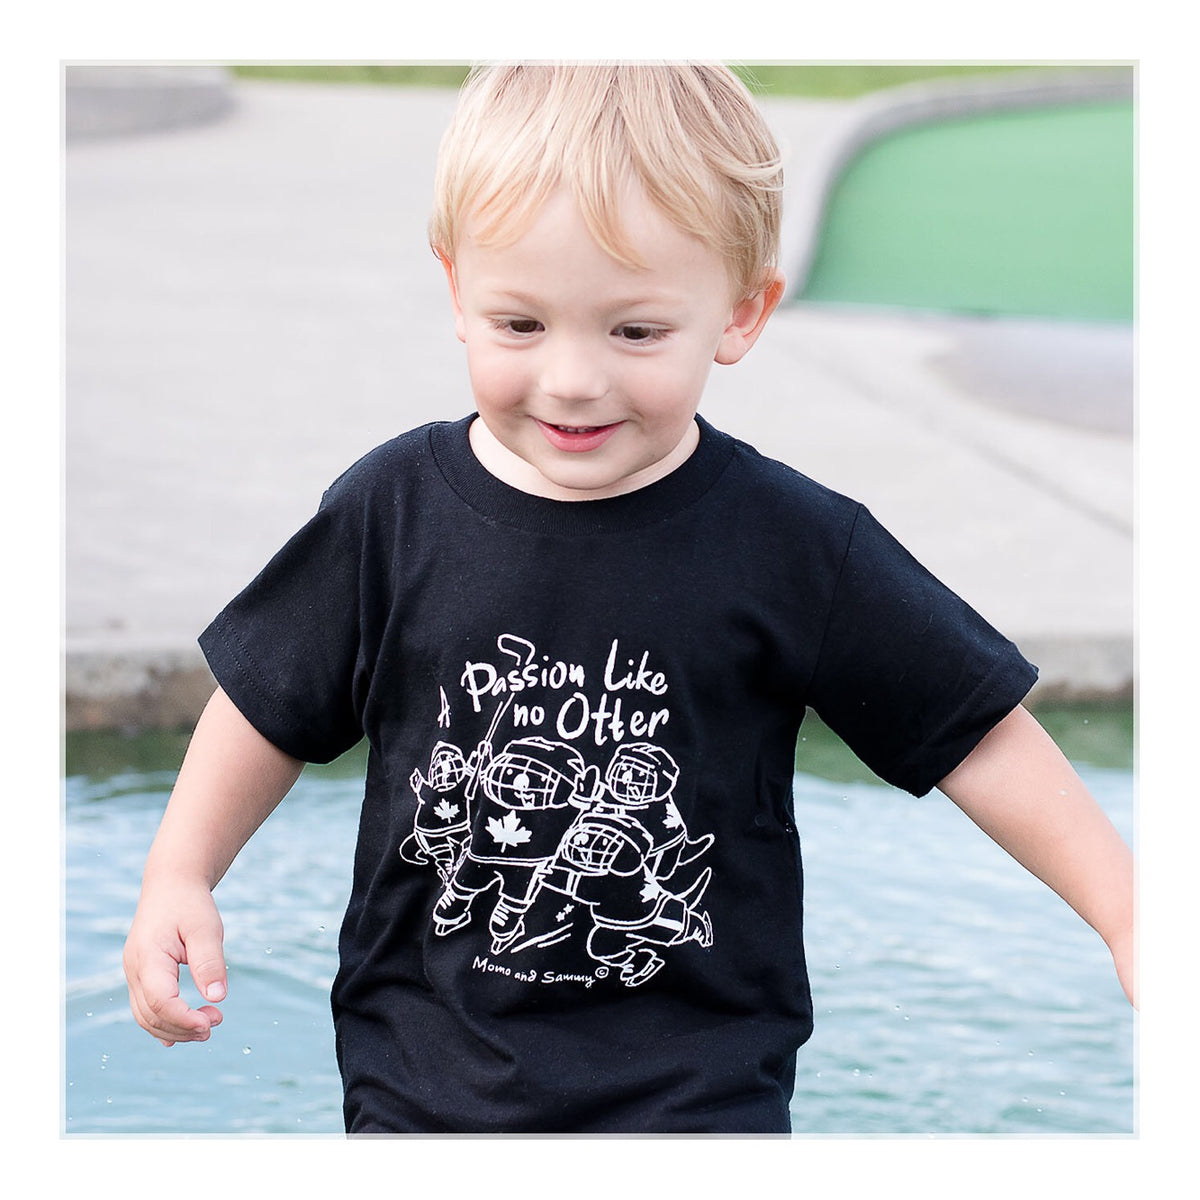 Kids Hockey Tee | Made in Nova Scotia | Momo and Sammy Clothing Co